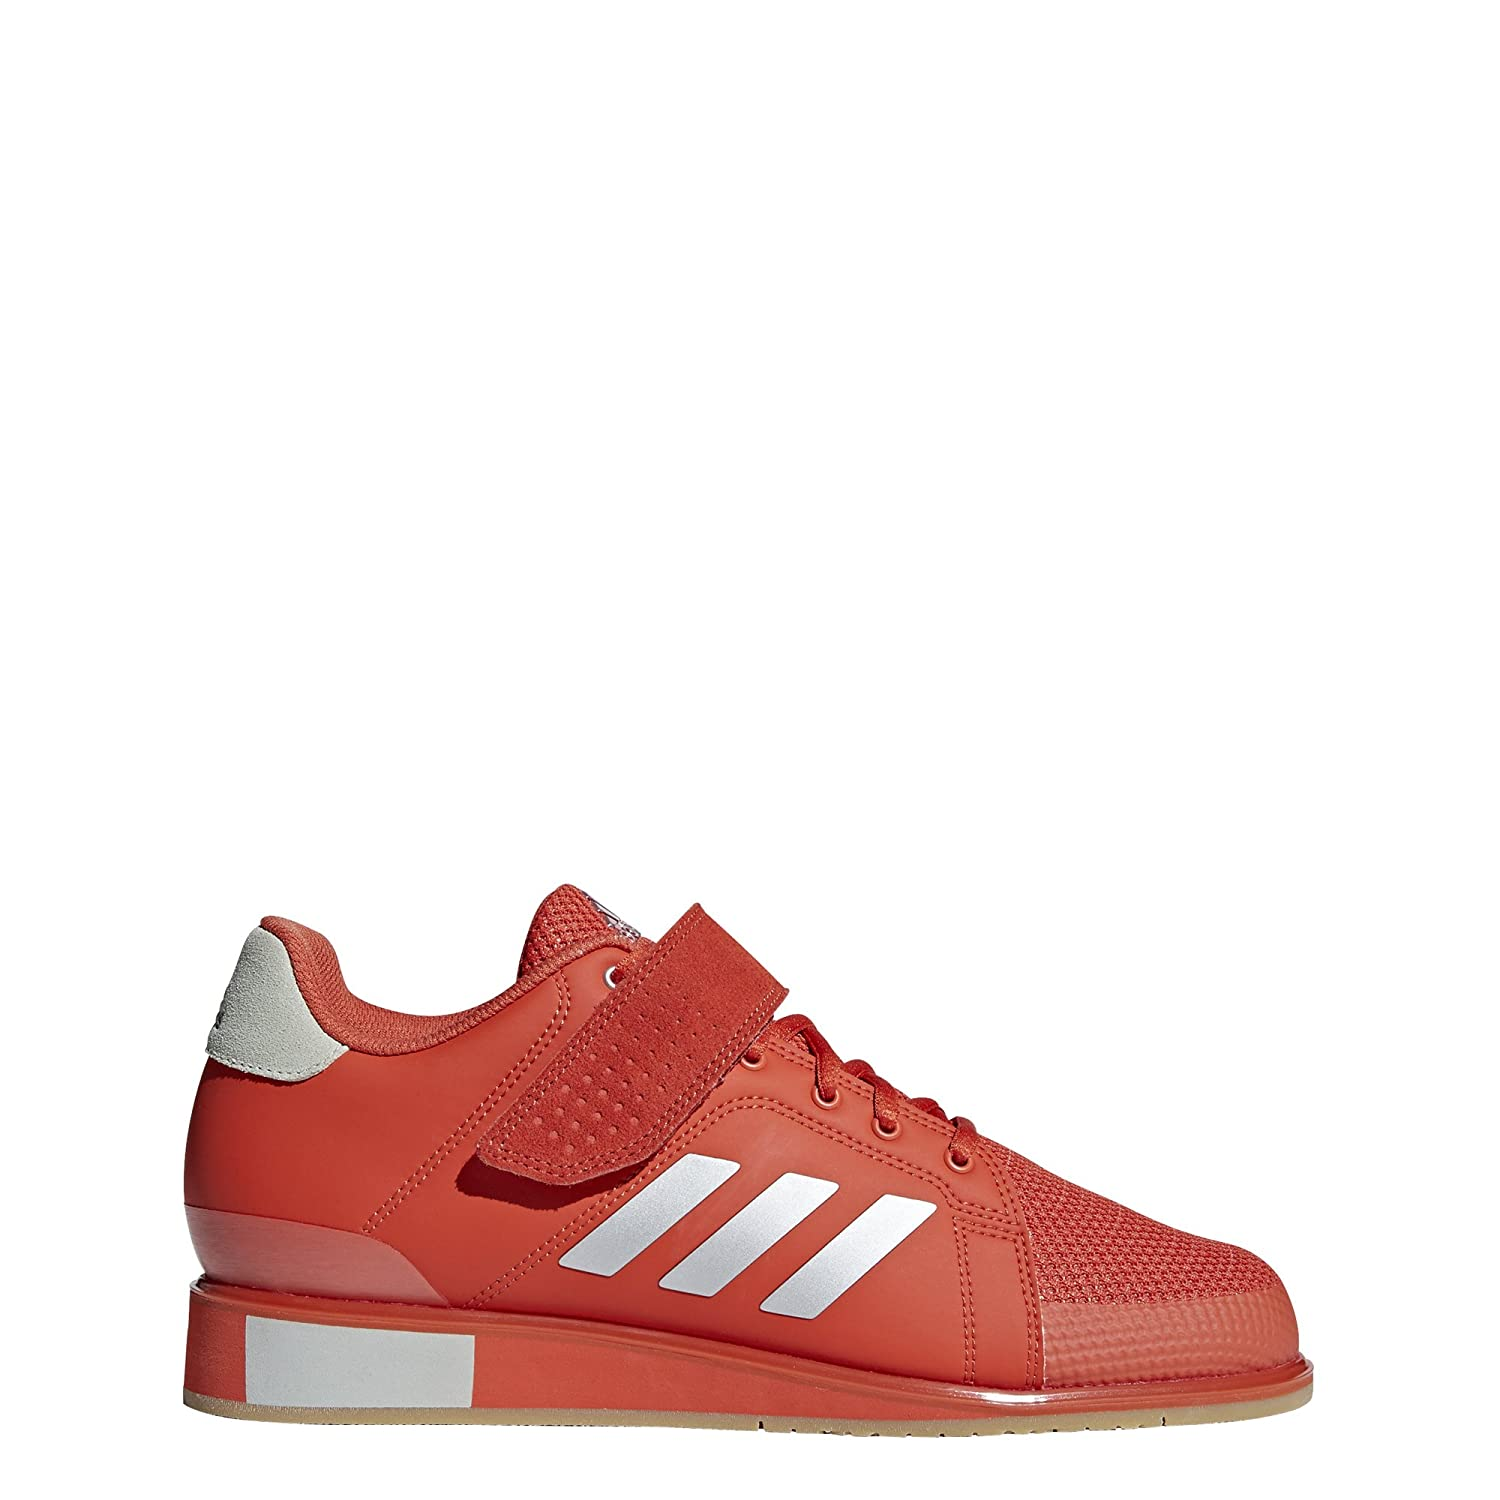 Ash argent argent Metallic Raw Amber Adidas Chaussures Athlétiques 47 EU